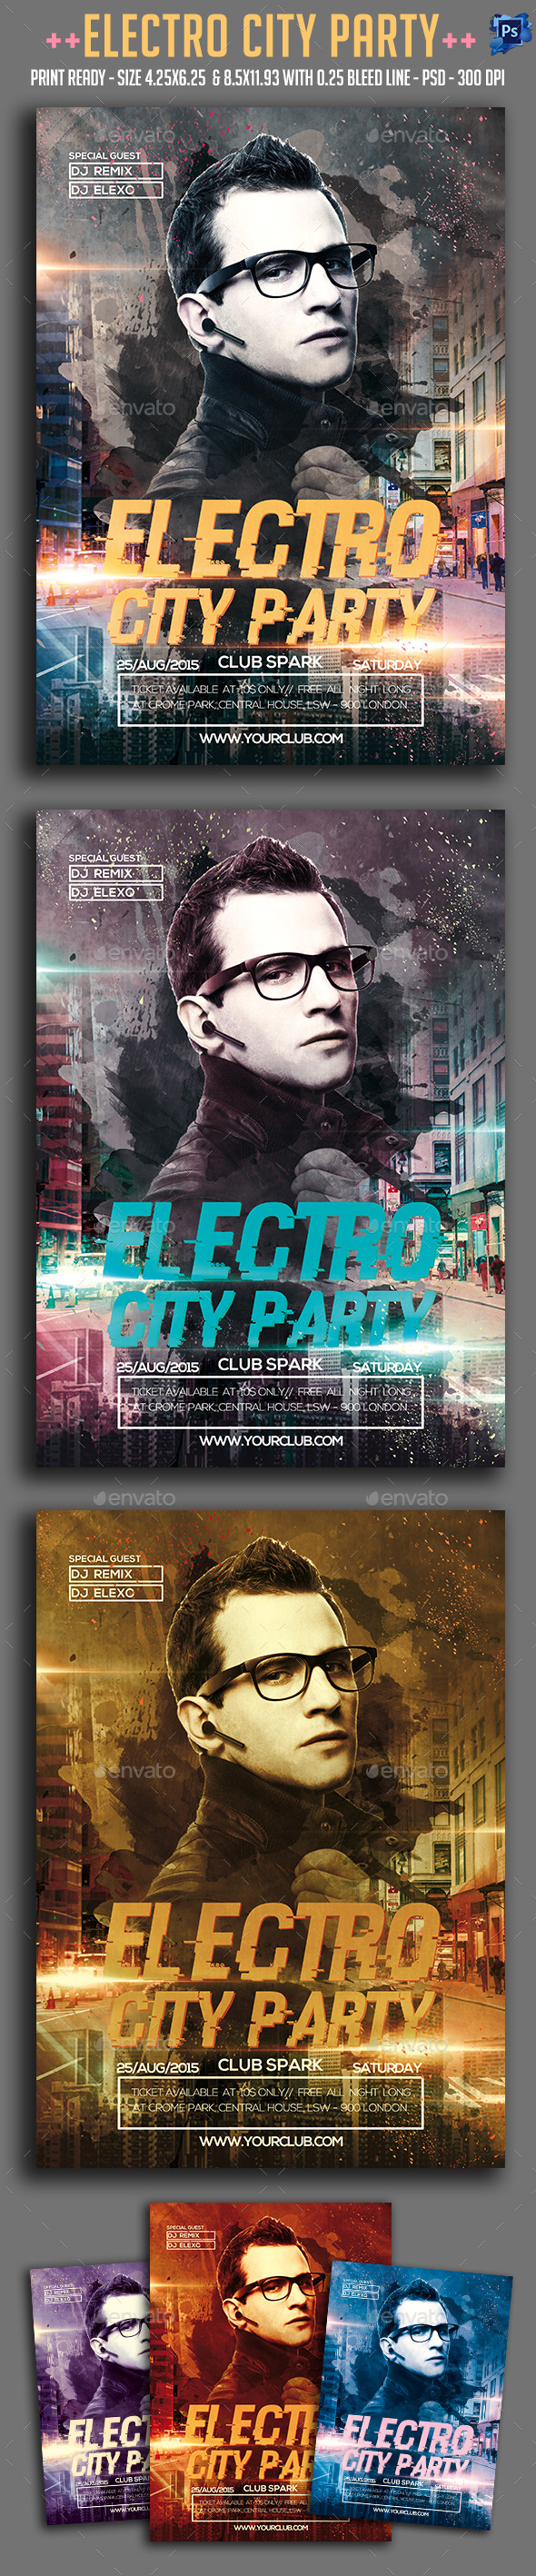 Electro City Party Flyer